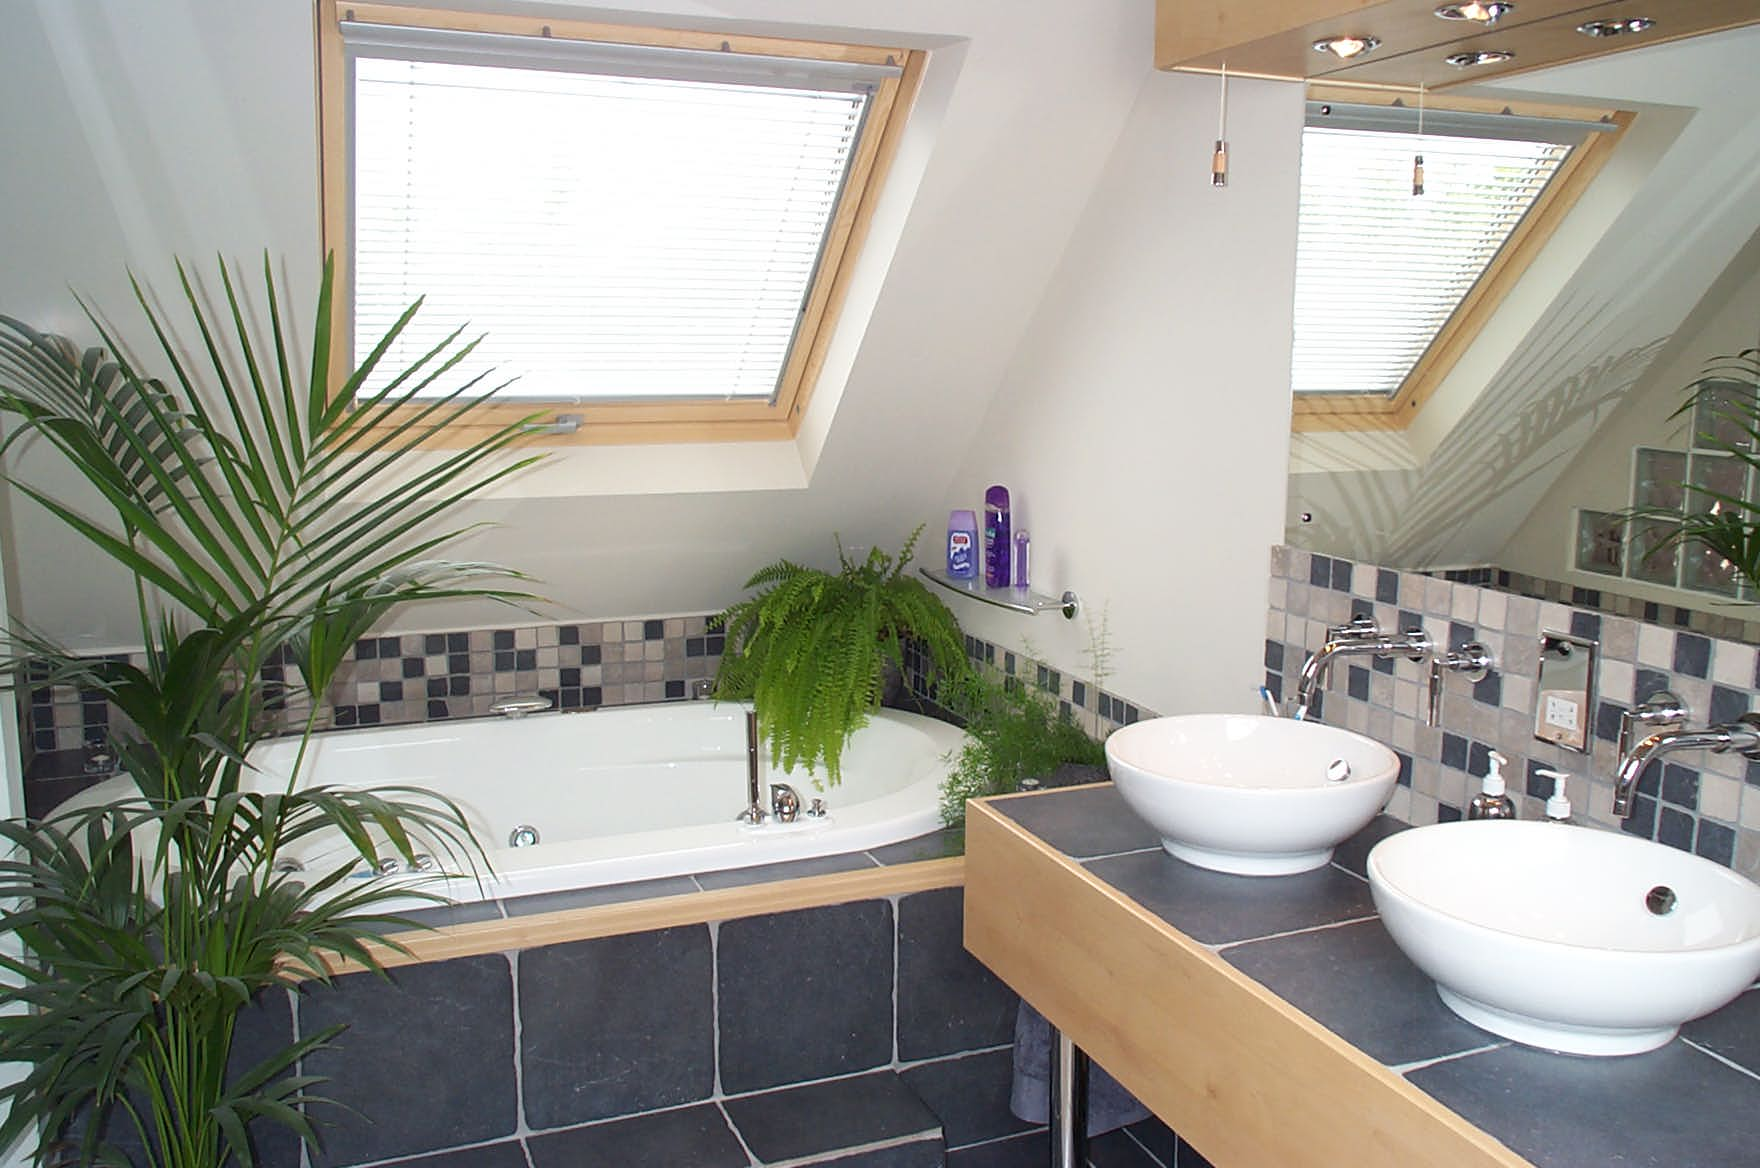 Top Bathroom Sink Remodel Ideas Dirt Connections